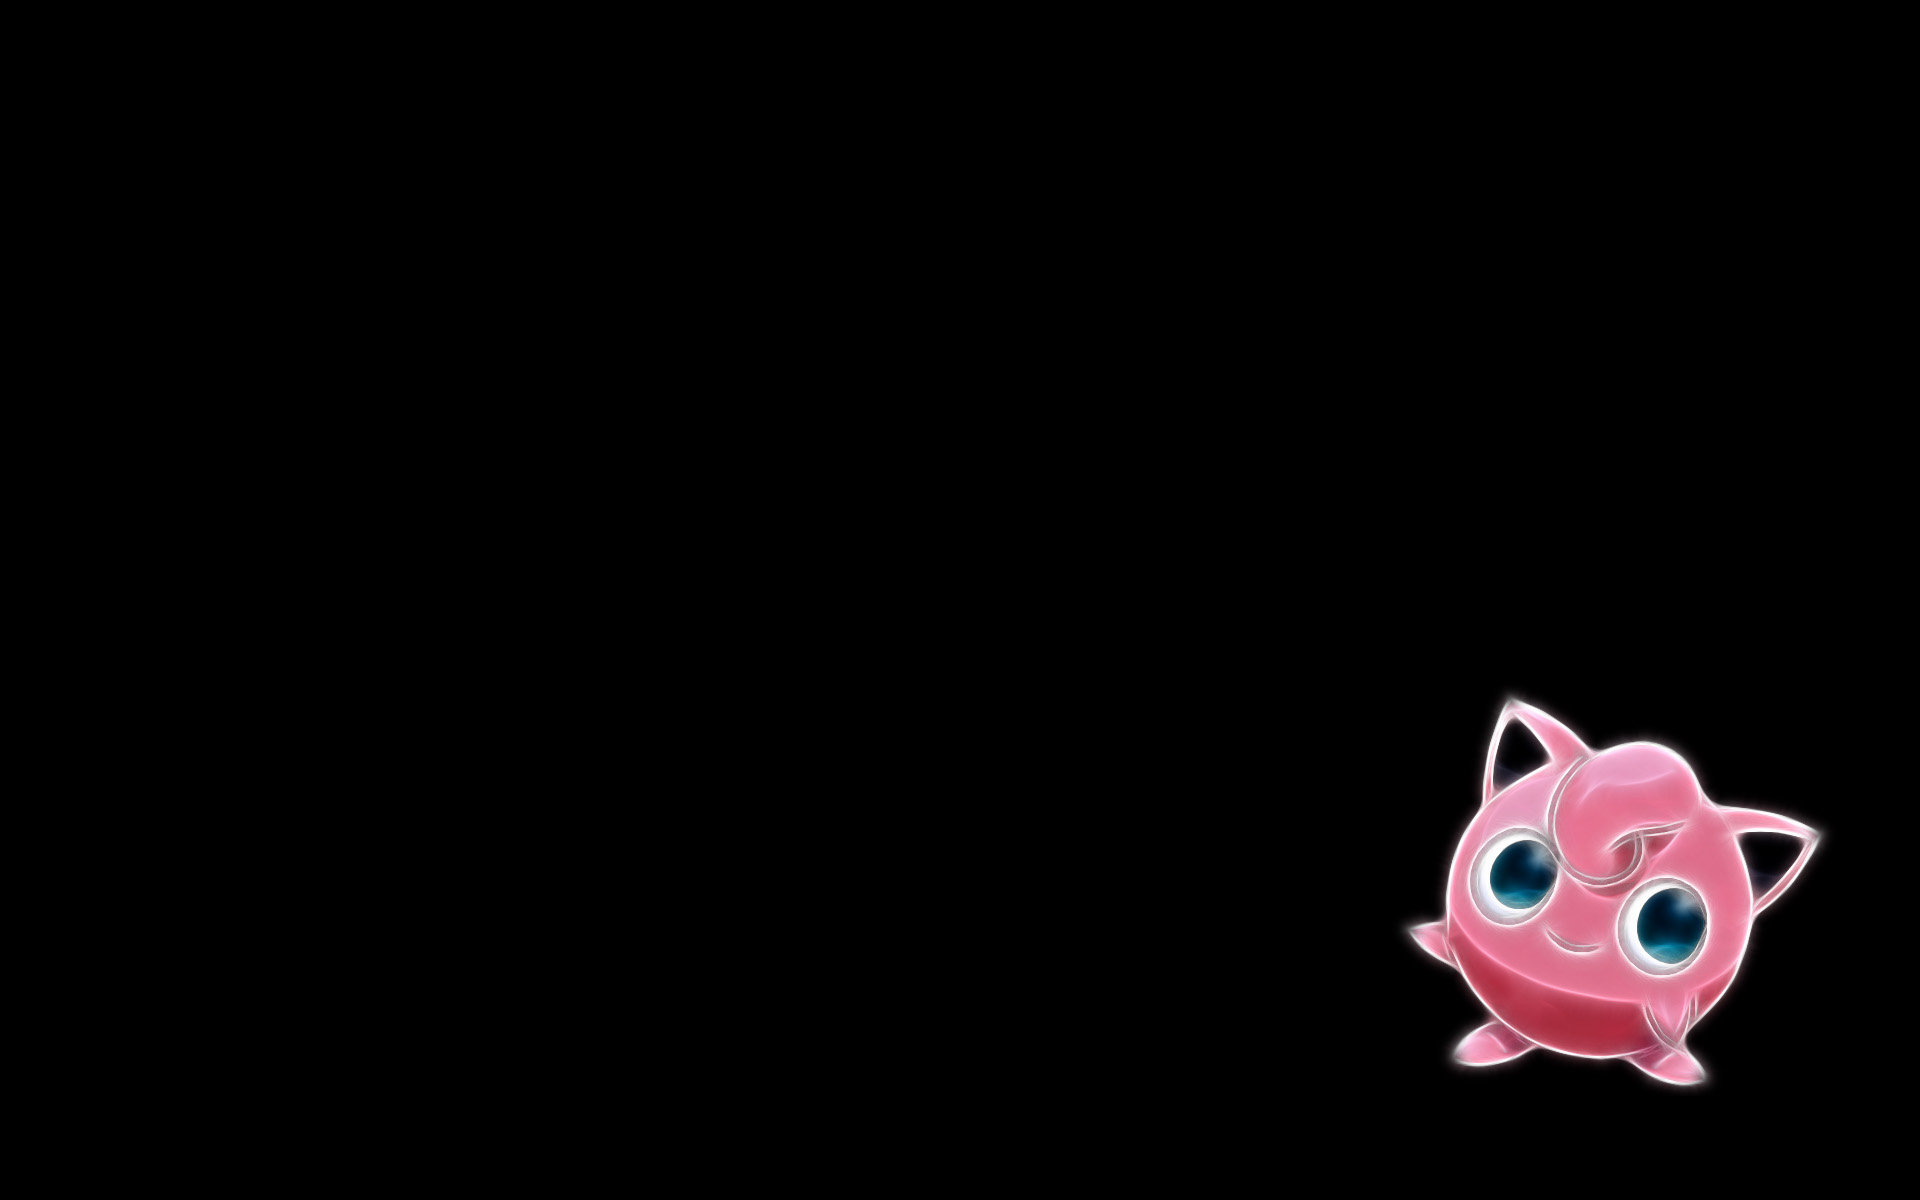 Wallpapers Jigglypuff Myspace Backgrounds Jigglypuff Backgrounds 1920x1200